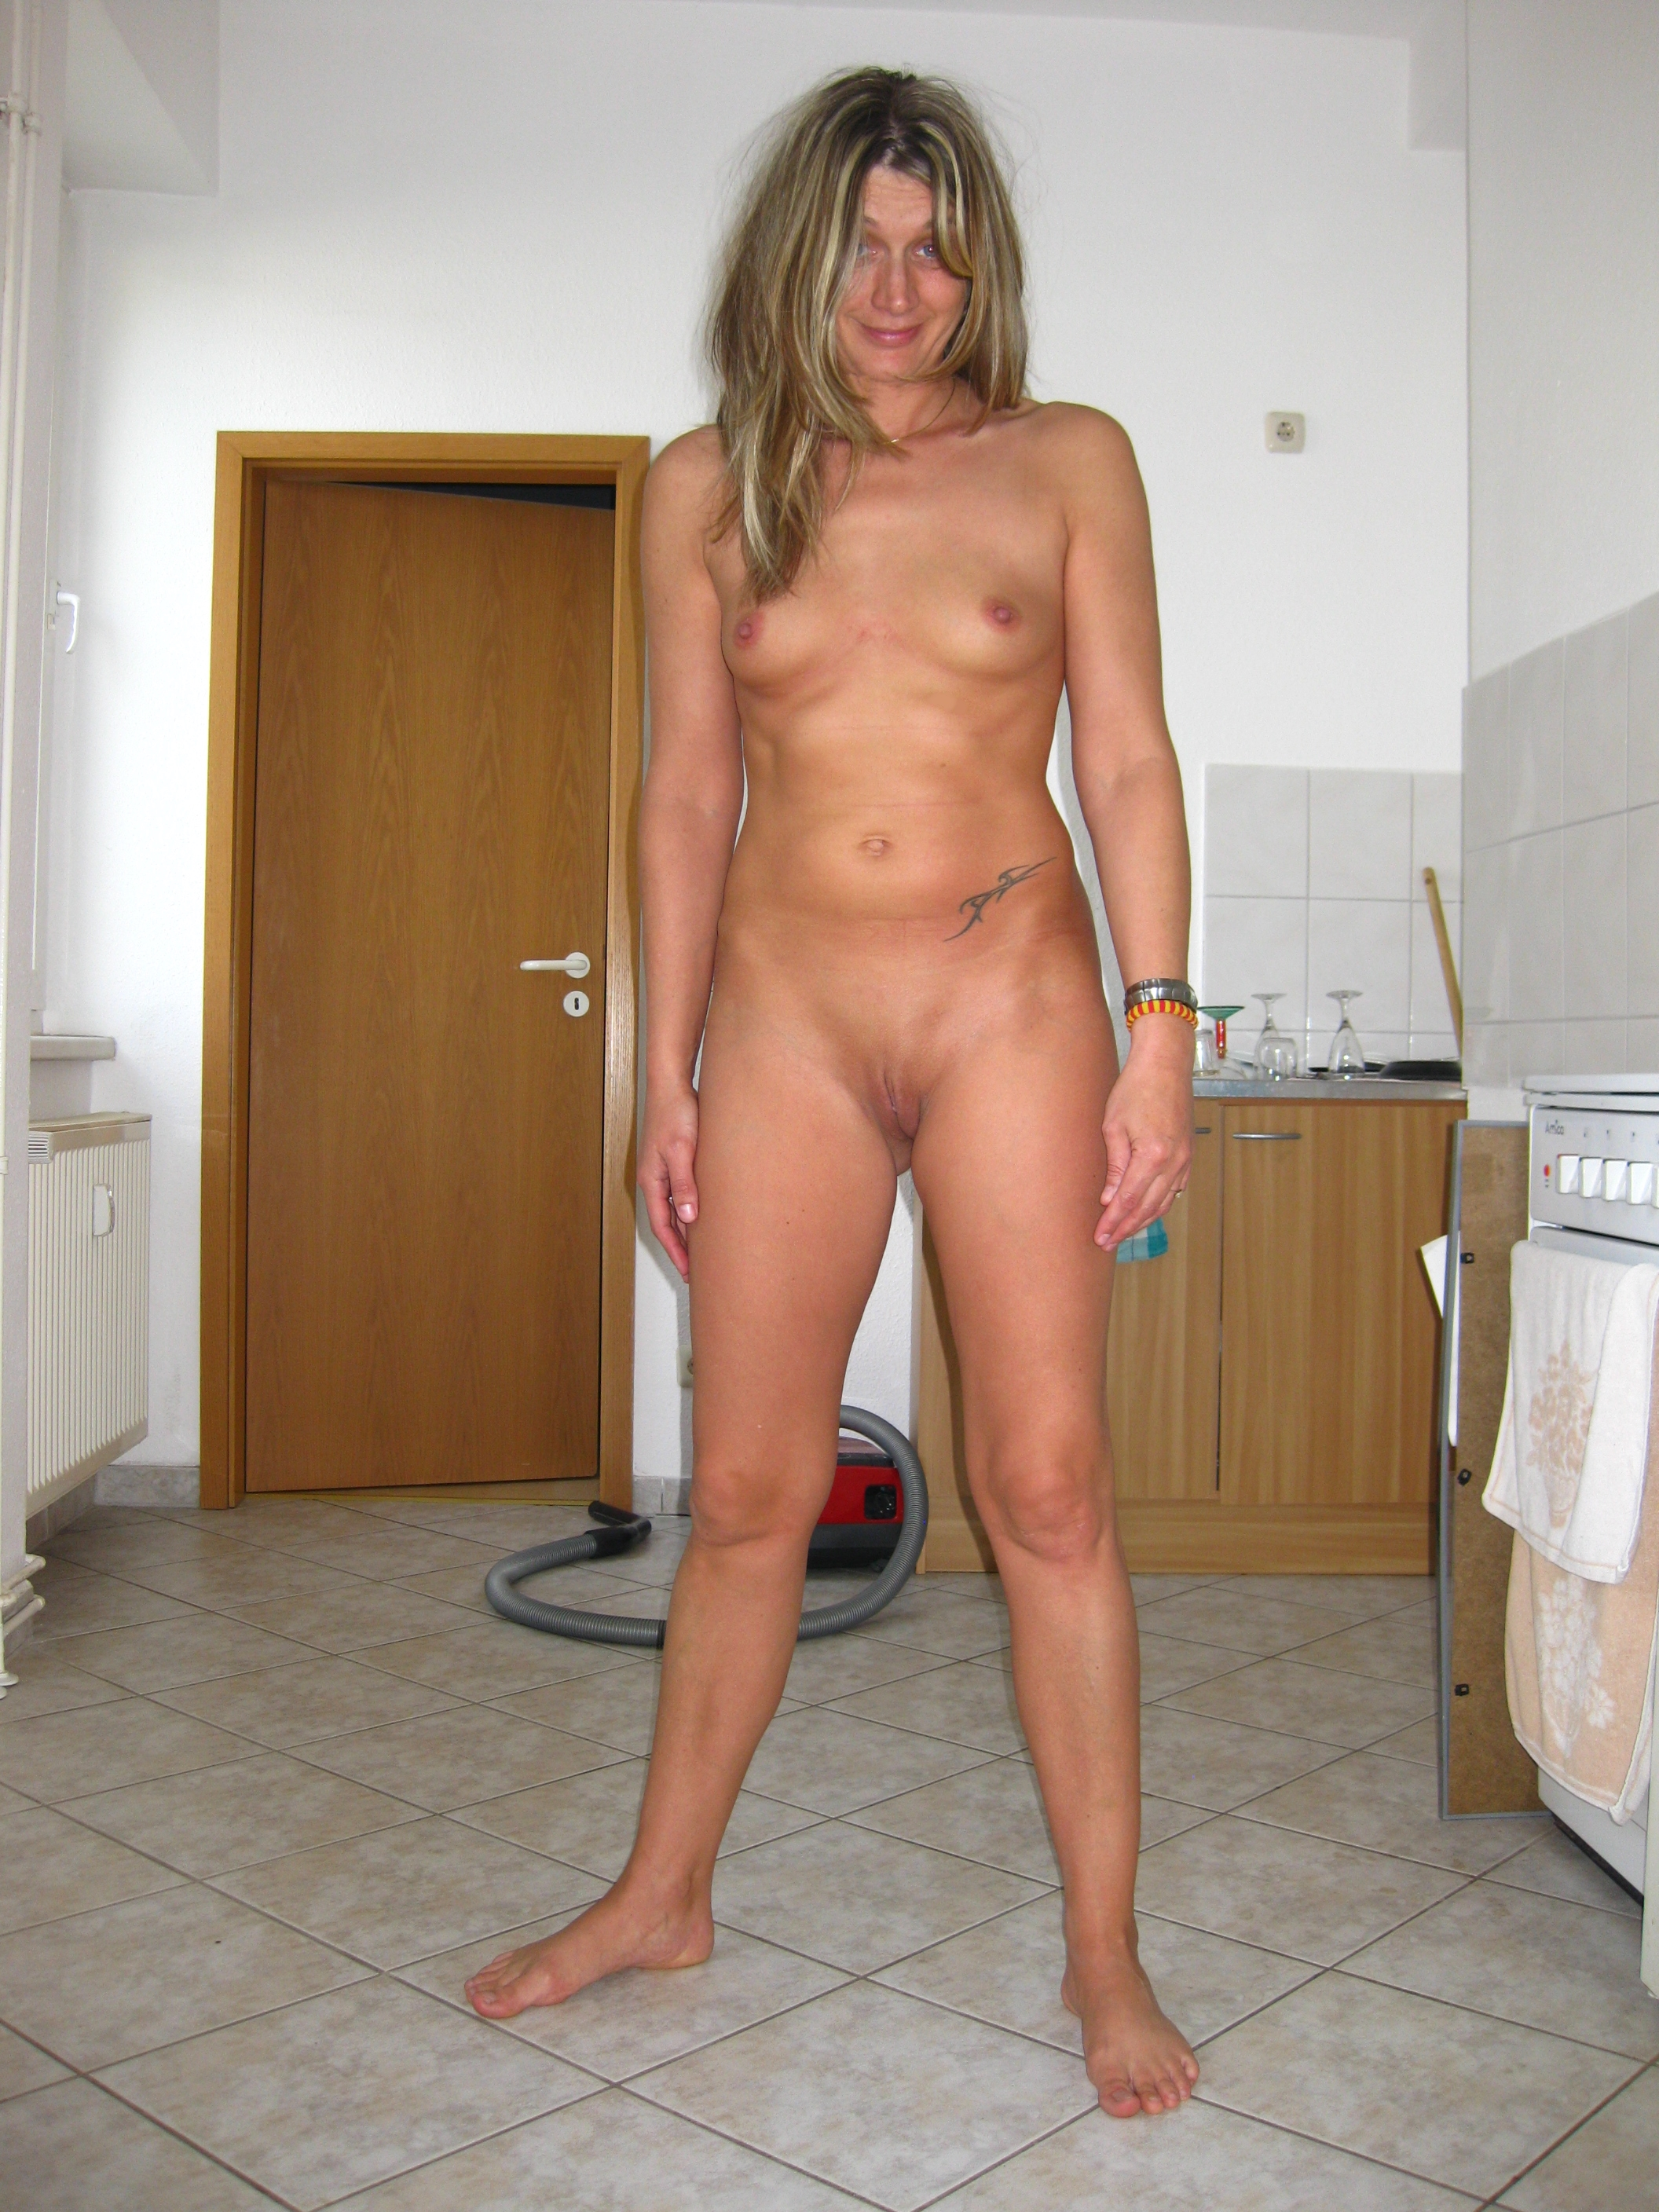 Made swingers wife beth many sexy